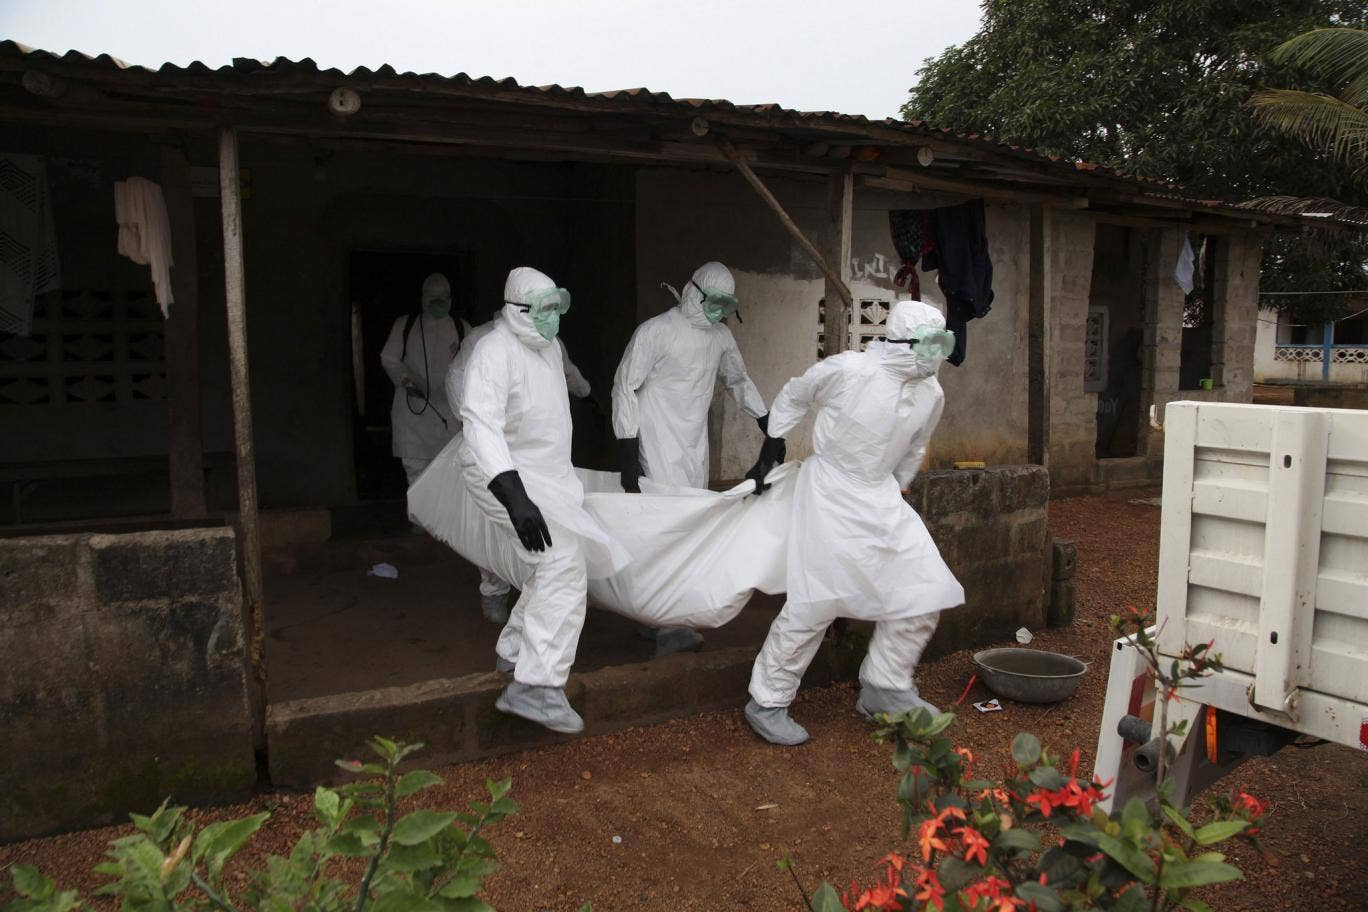 Liberian nurses carry the body of an Ebola victim from a house for burial in the Banjor Community on the outskirts of Monrovia, Liberia 6 August 2014.